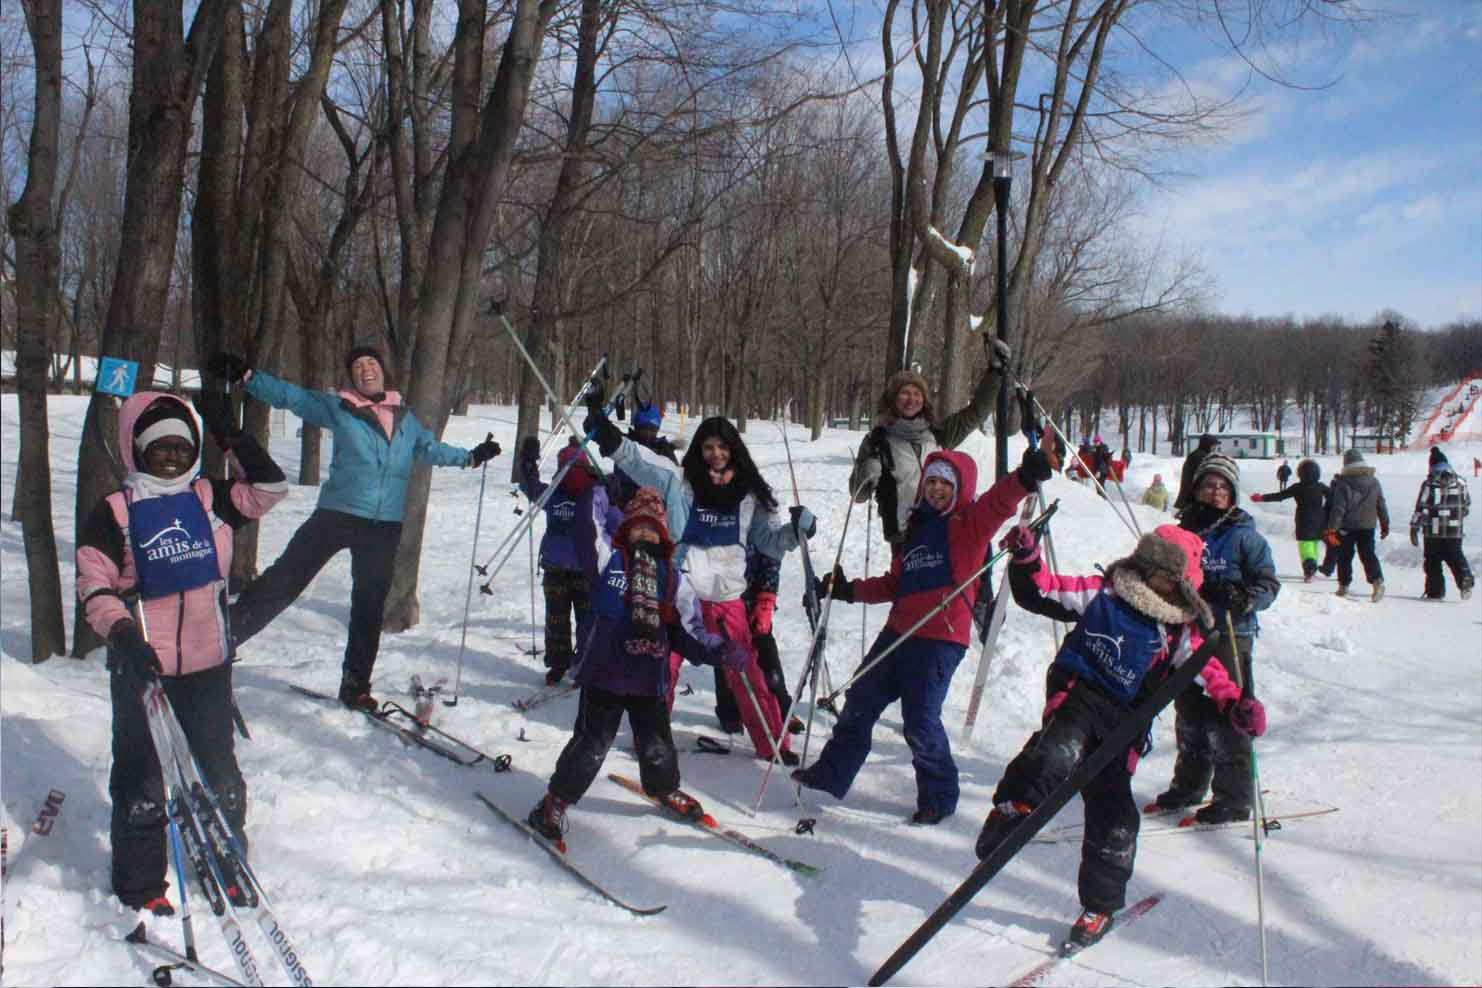 Youth Cross-Country Ski Club